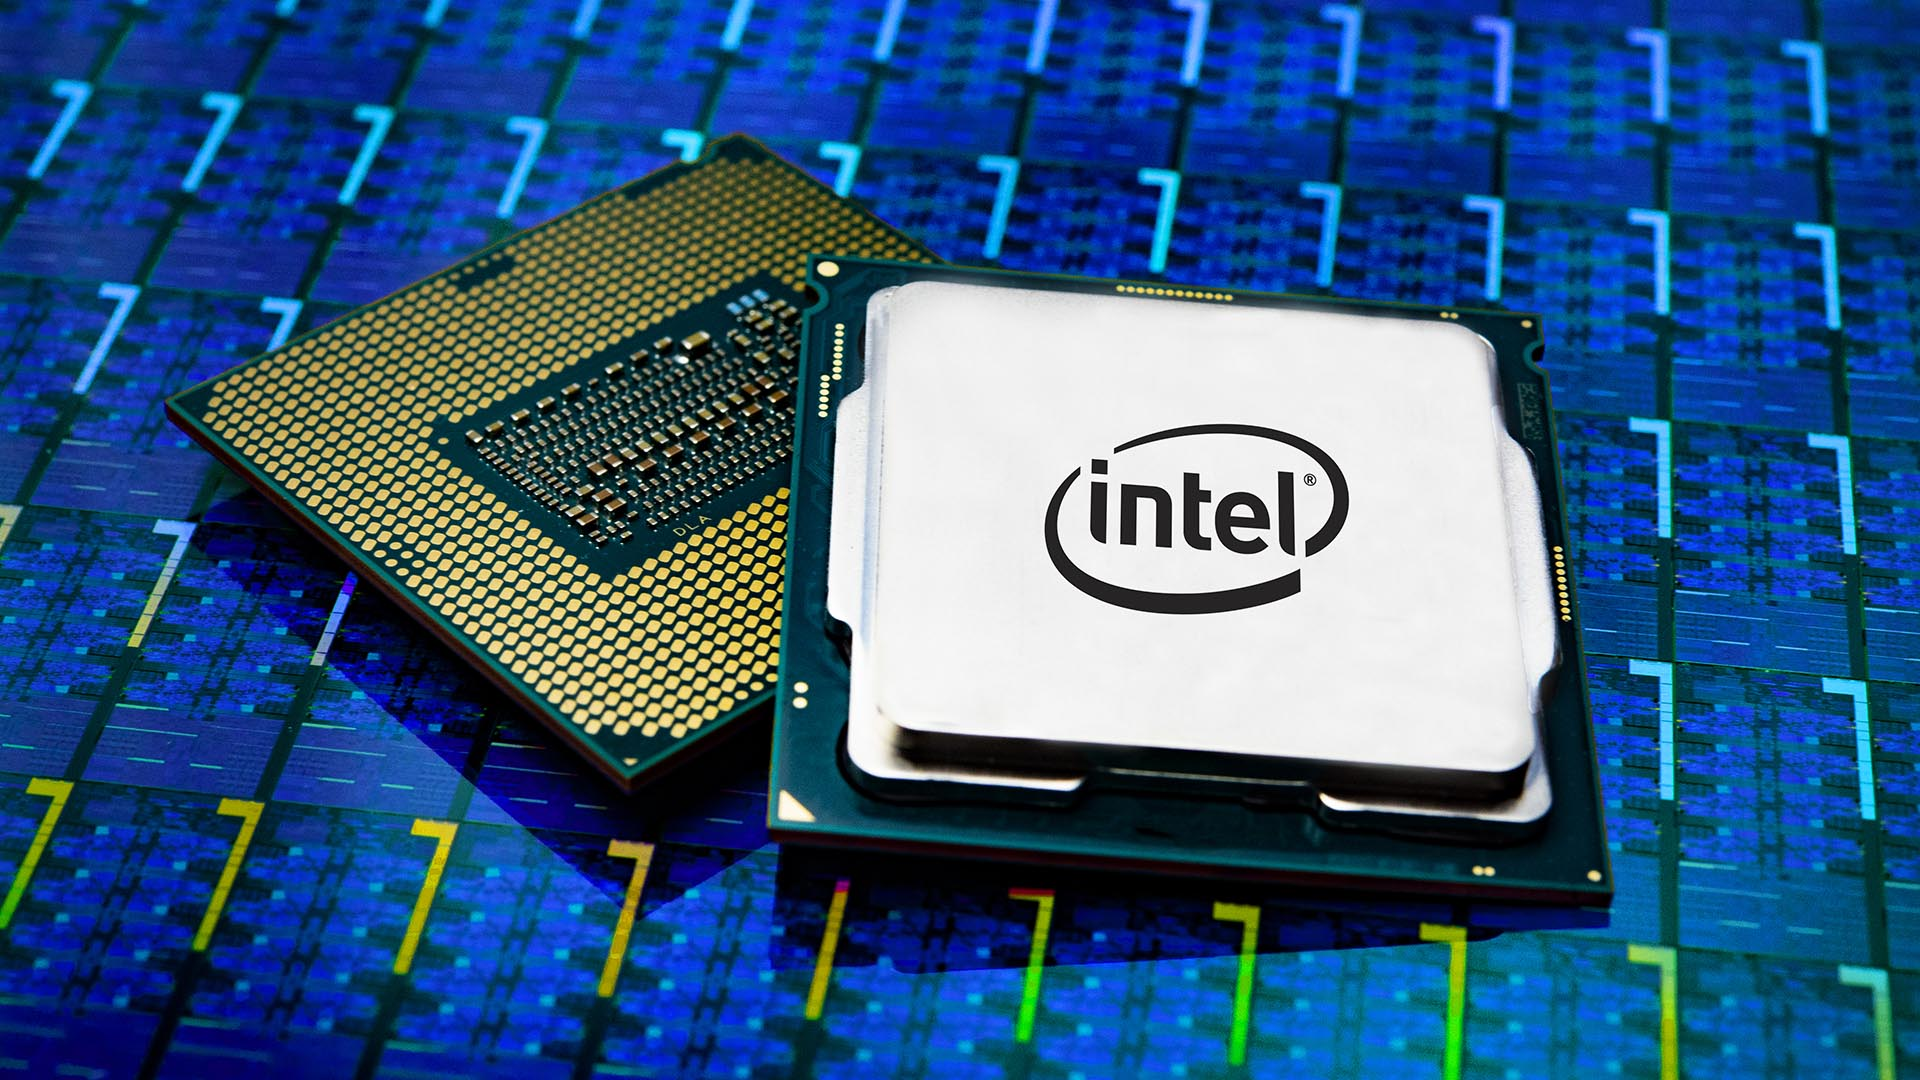 Intel Core i7 9700K review: Proof gamers don't need Hyper-Threading